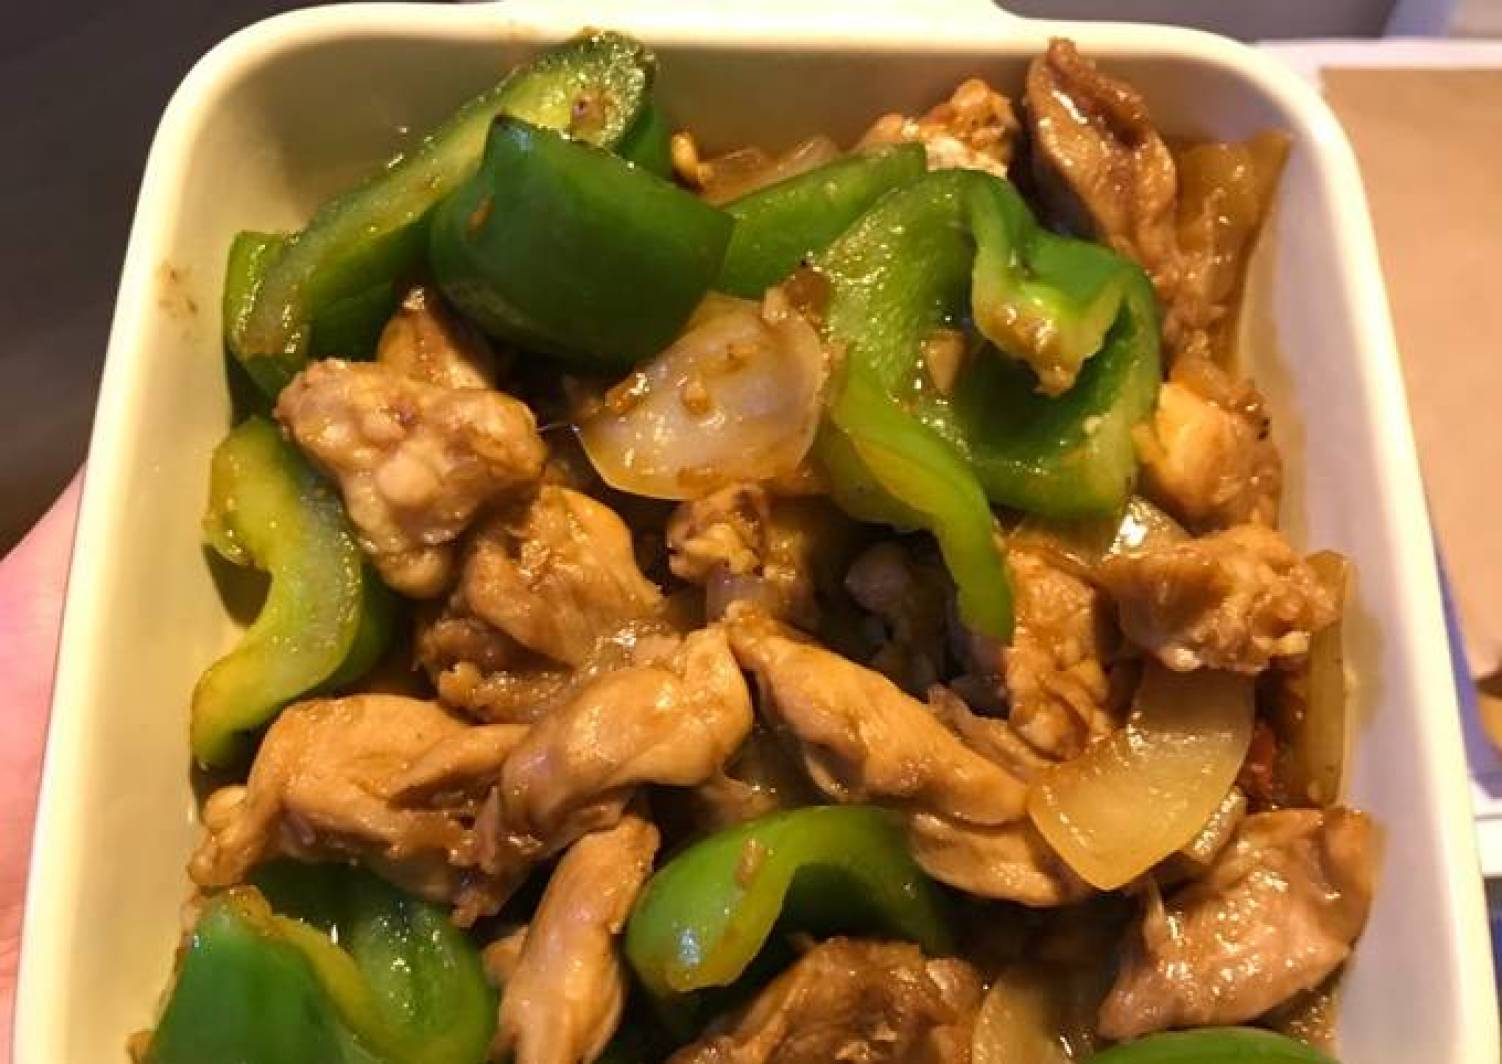 Spicy soy sauce chicken with onion and green pepper